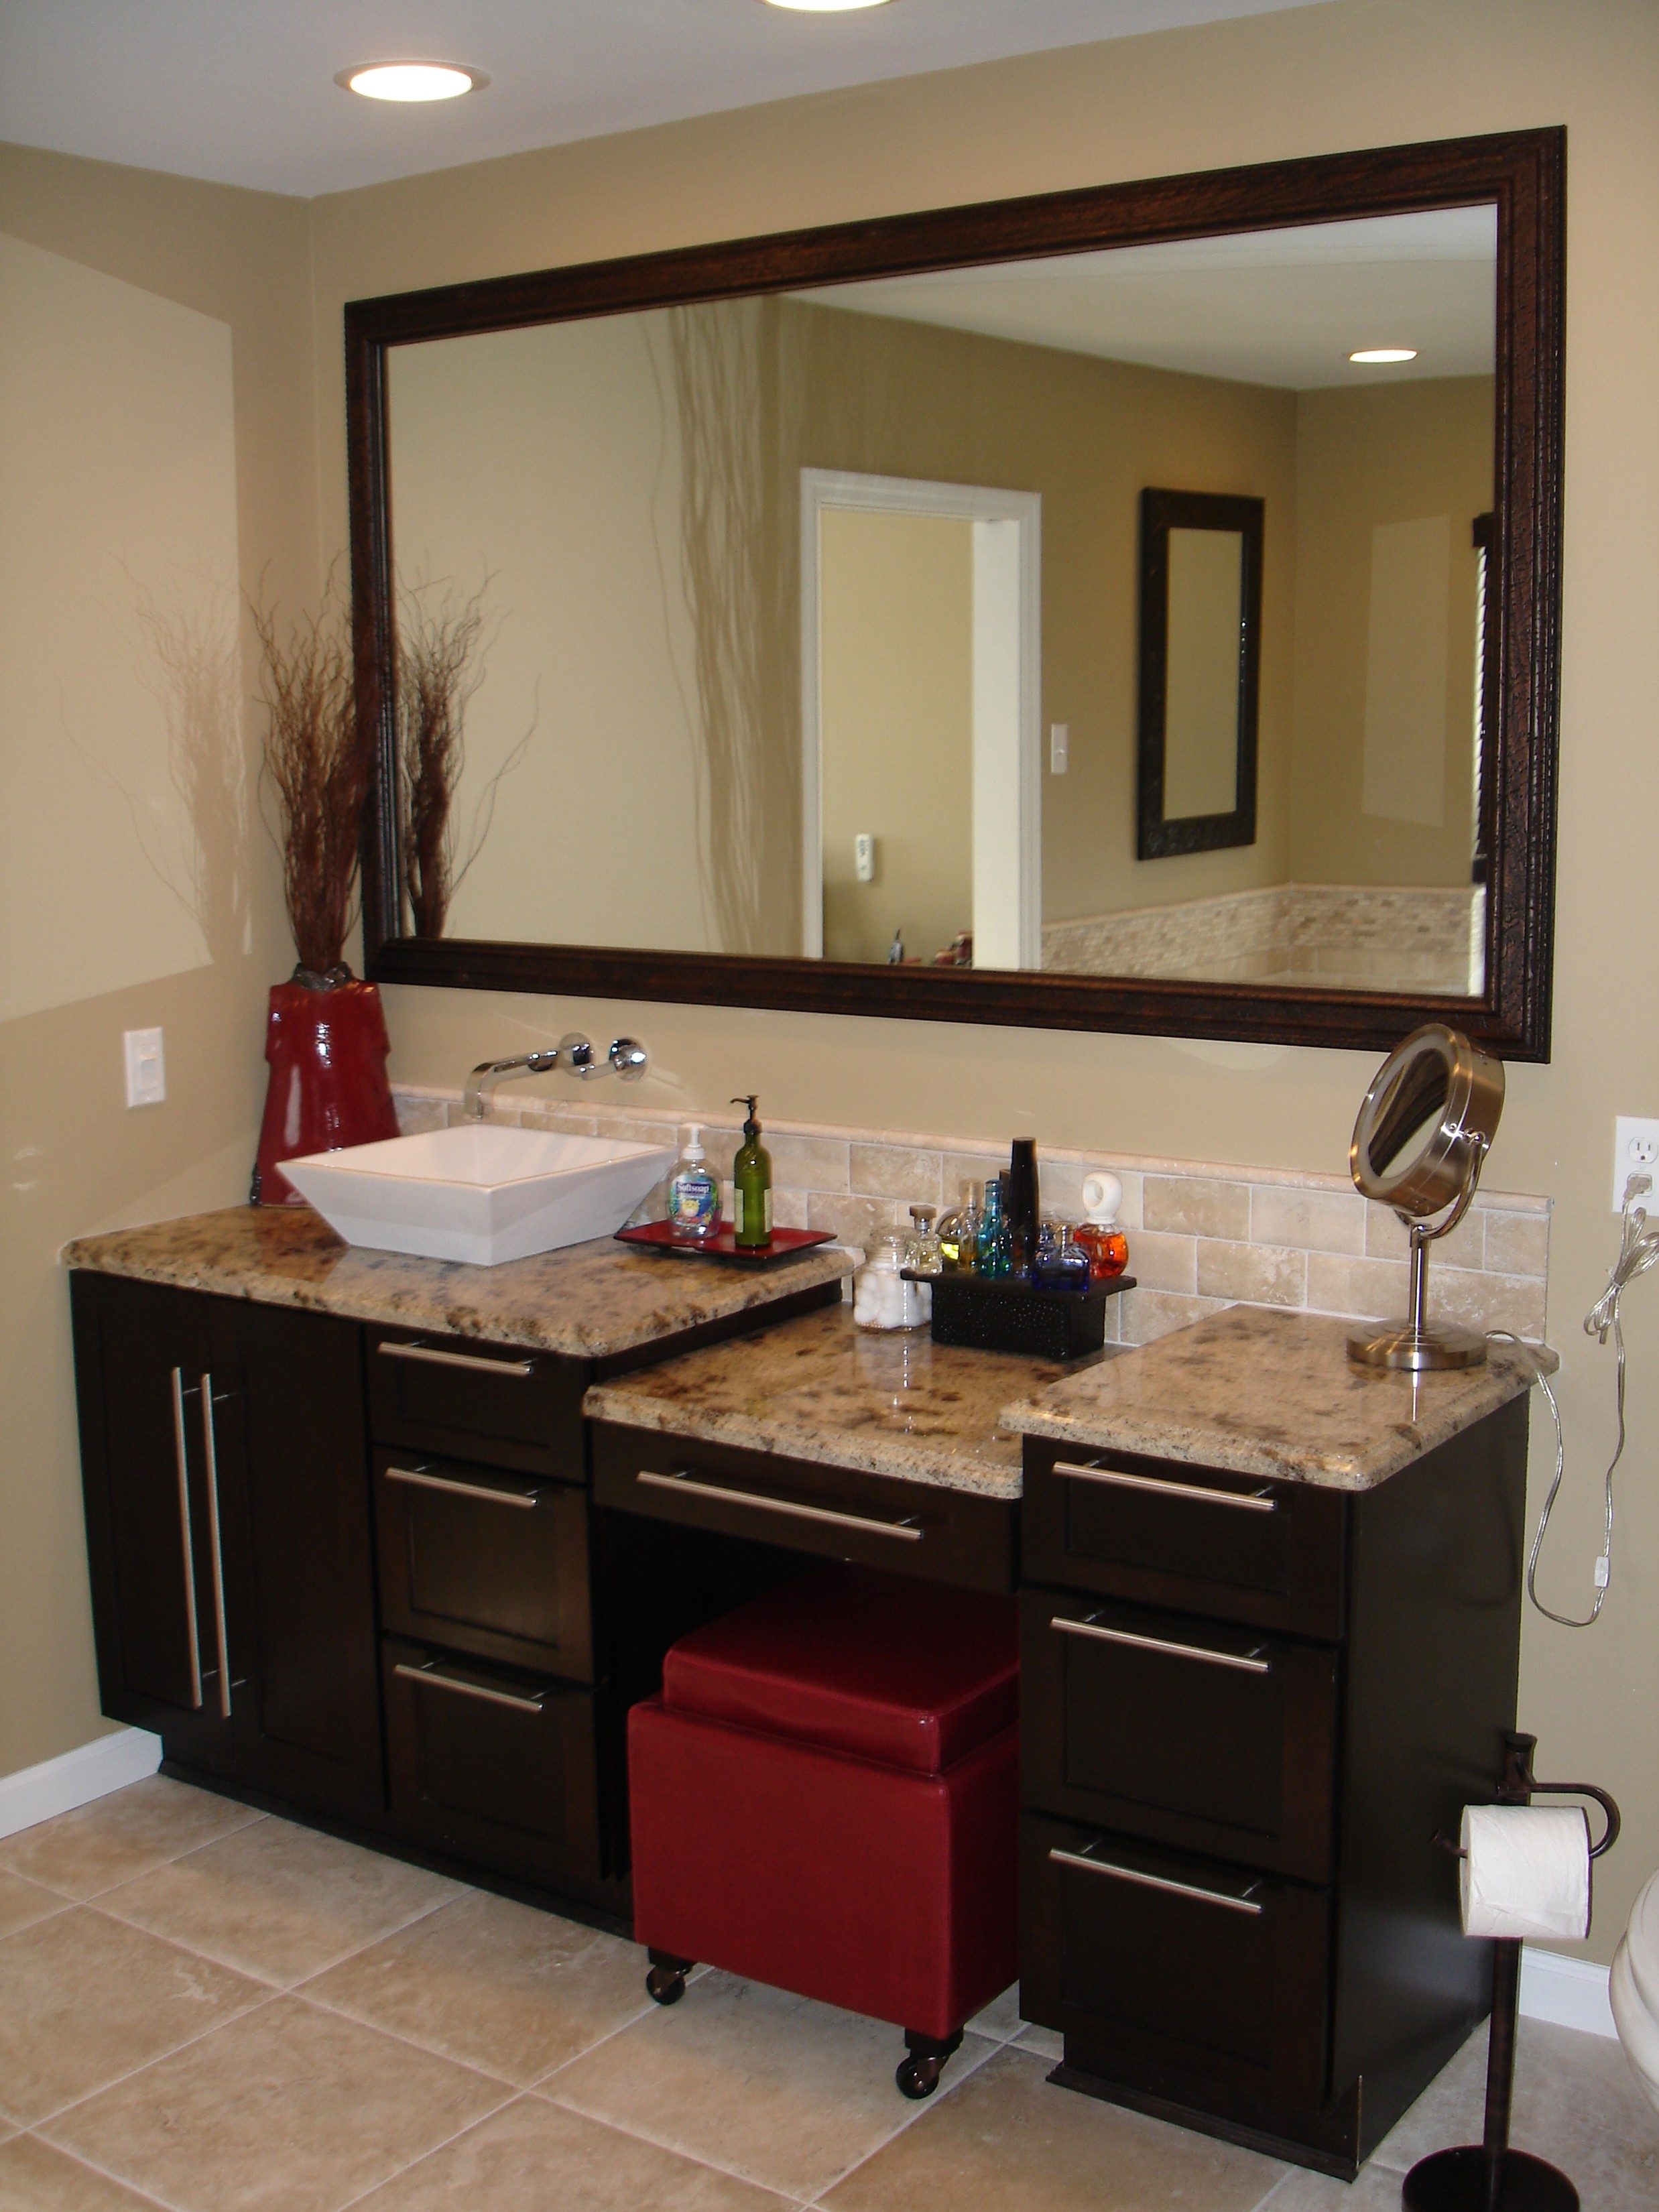 Bathroom vanities with makeup area - Bathroom Vanities With Makeup Area 42